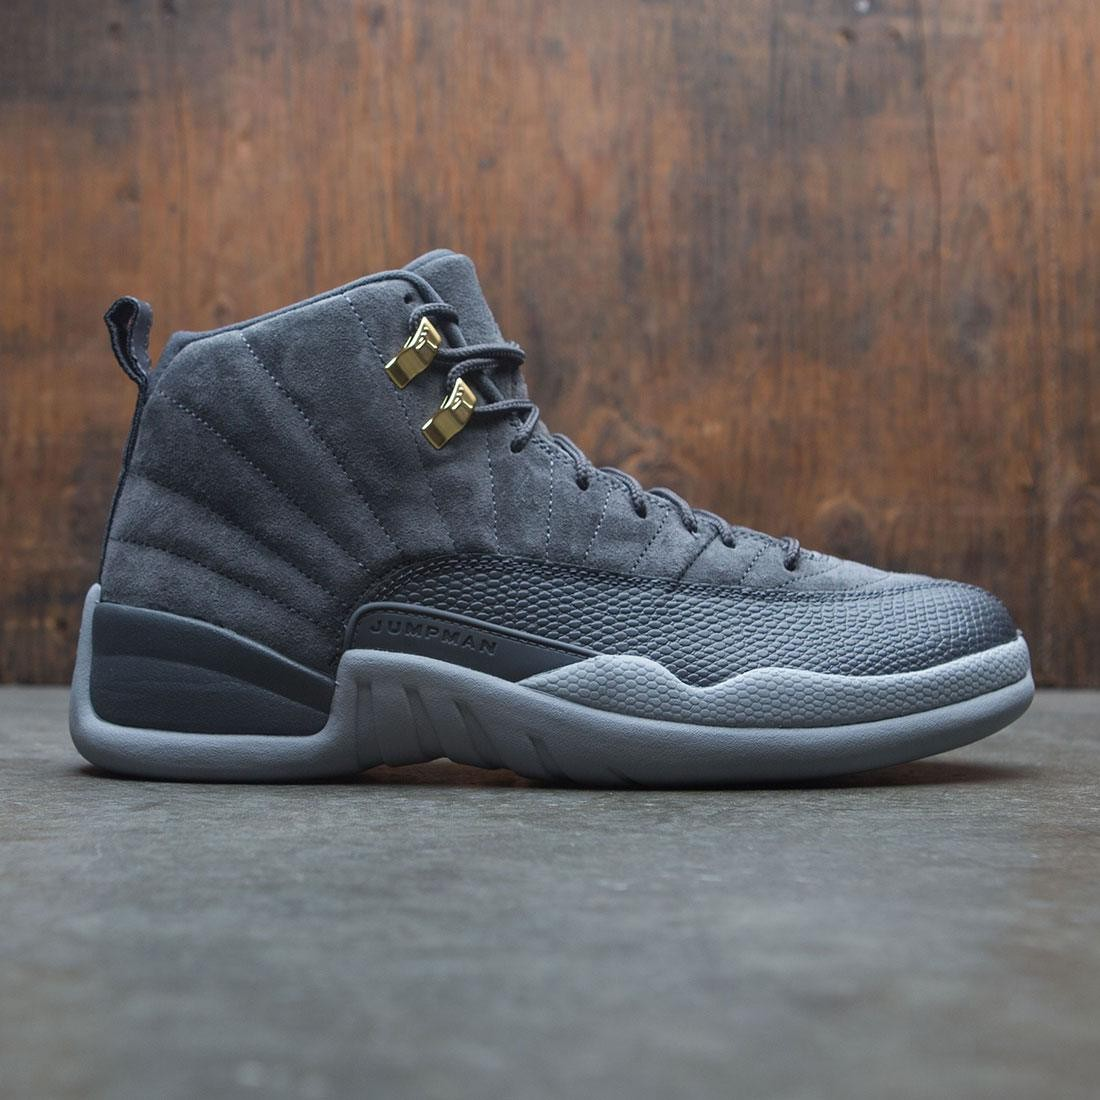 154d45bcc46bbf jordan men air jordan 12 retro dark grey dark grey wolf grey